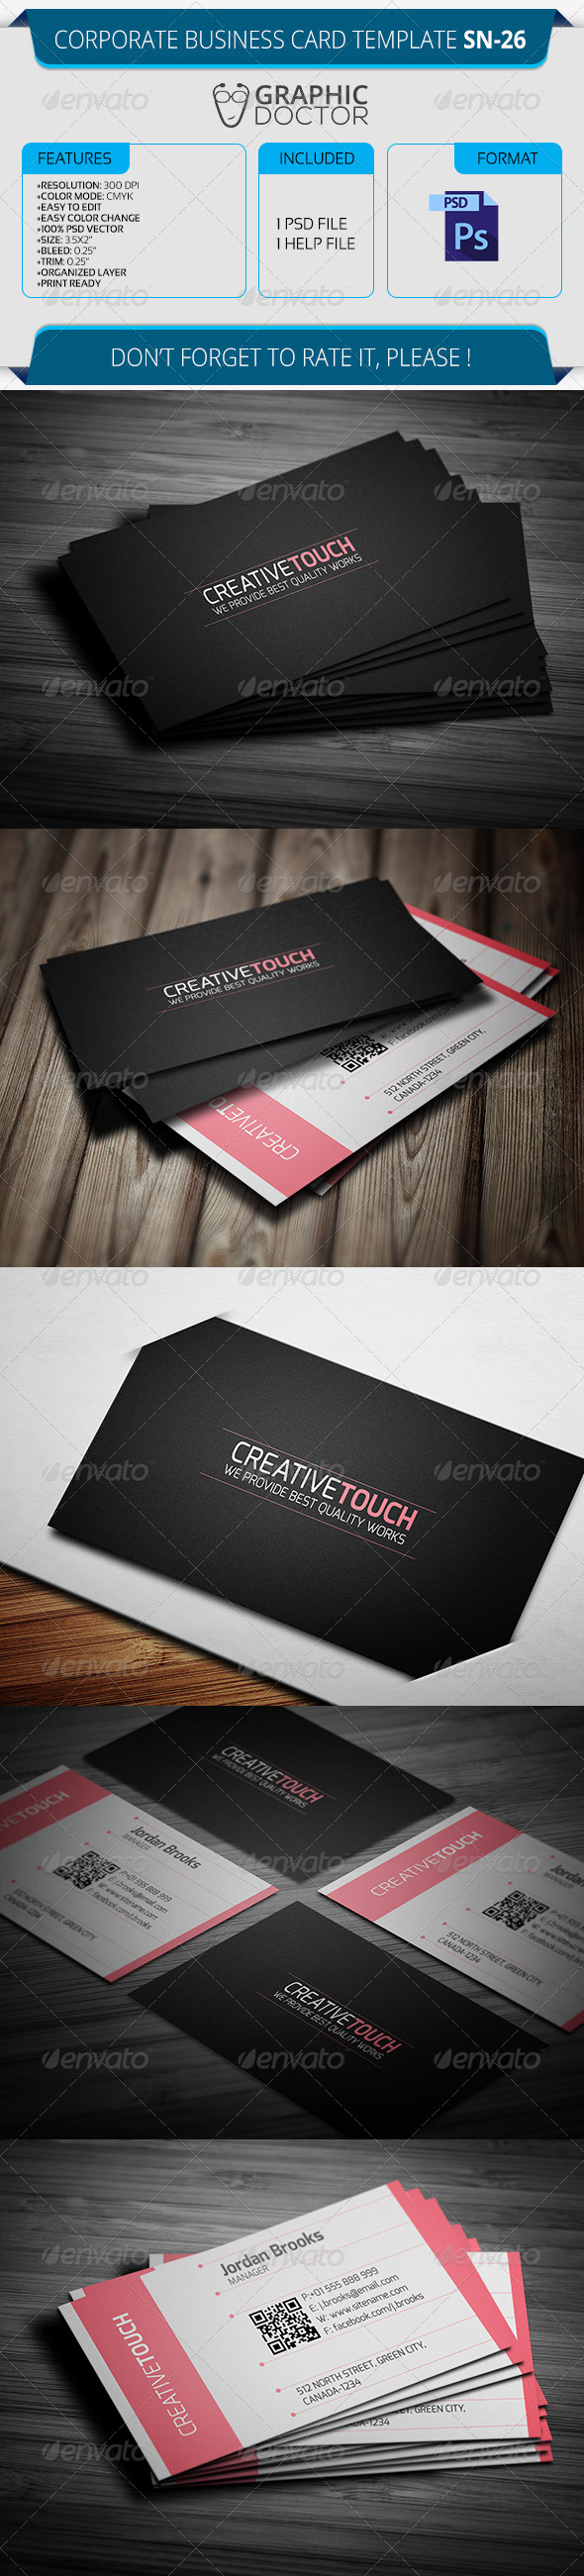 Corporate Business Card Template SN-26 - Corporate Business Cards